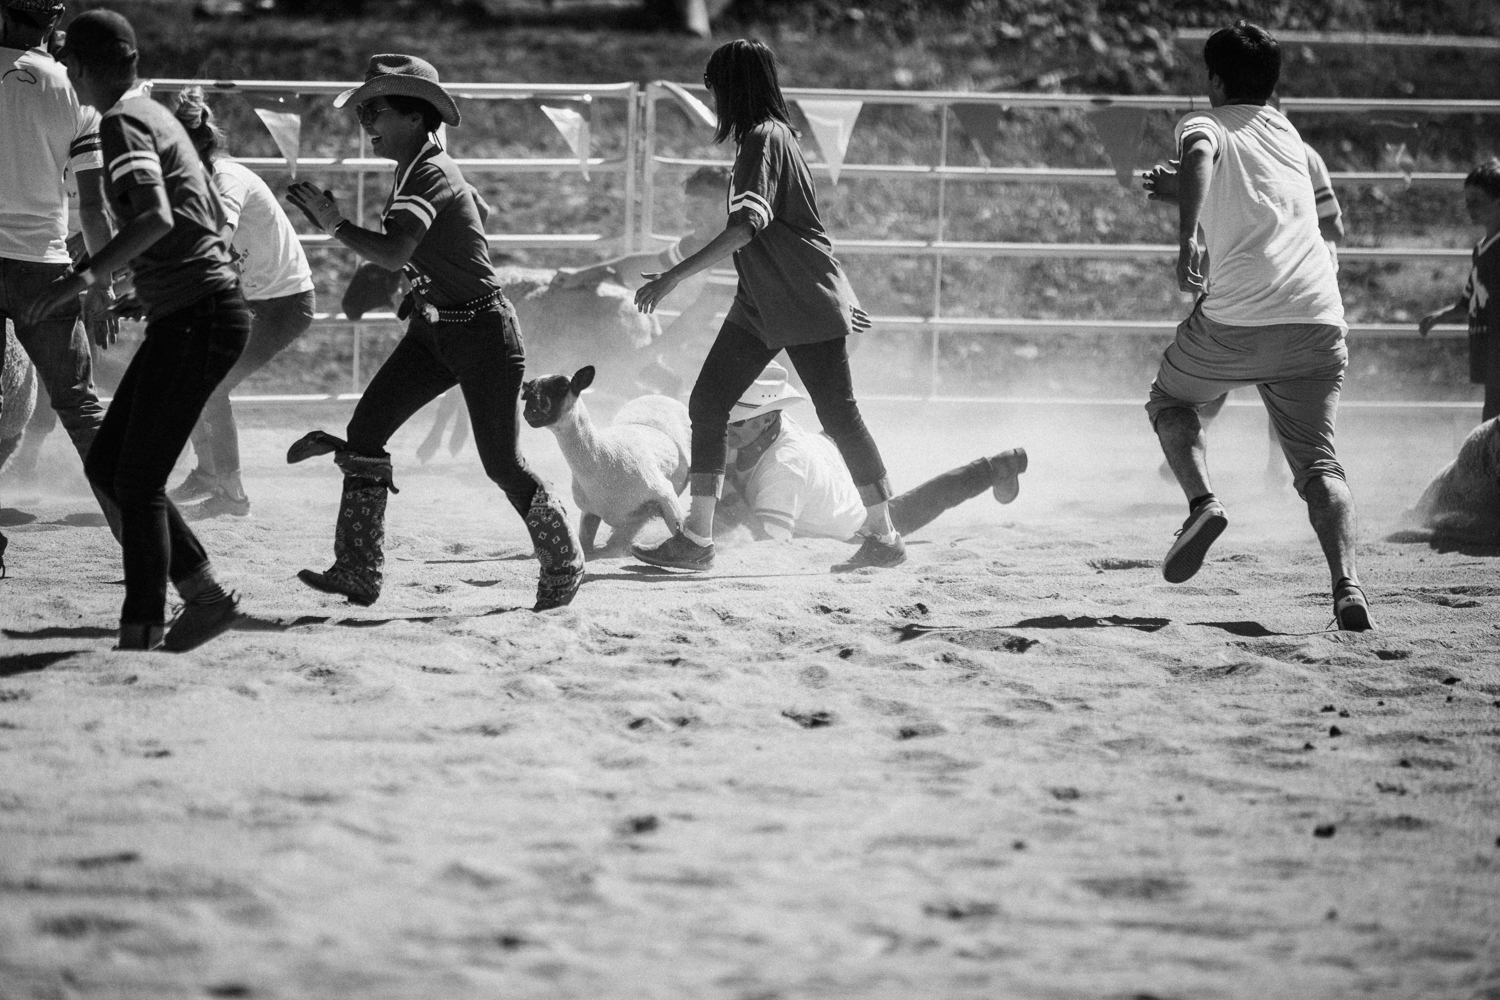 candid-documentary-photography-of-man-tackling-sheep-at-family-labor-day-celebration-park-city-ut